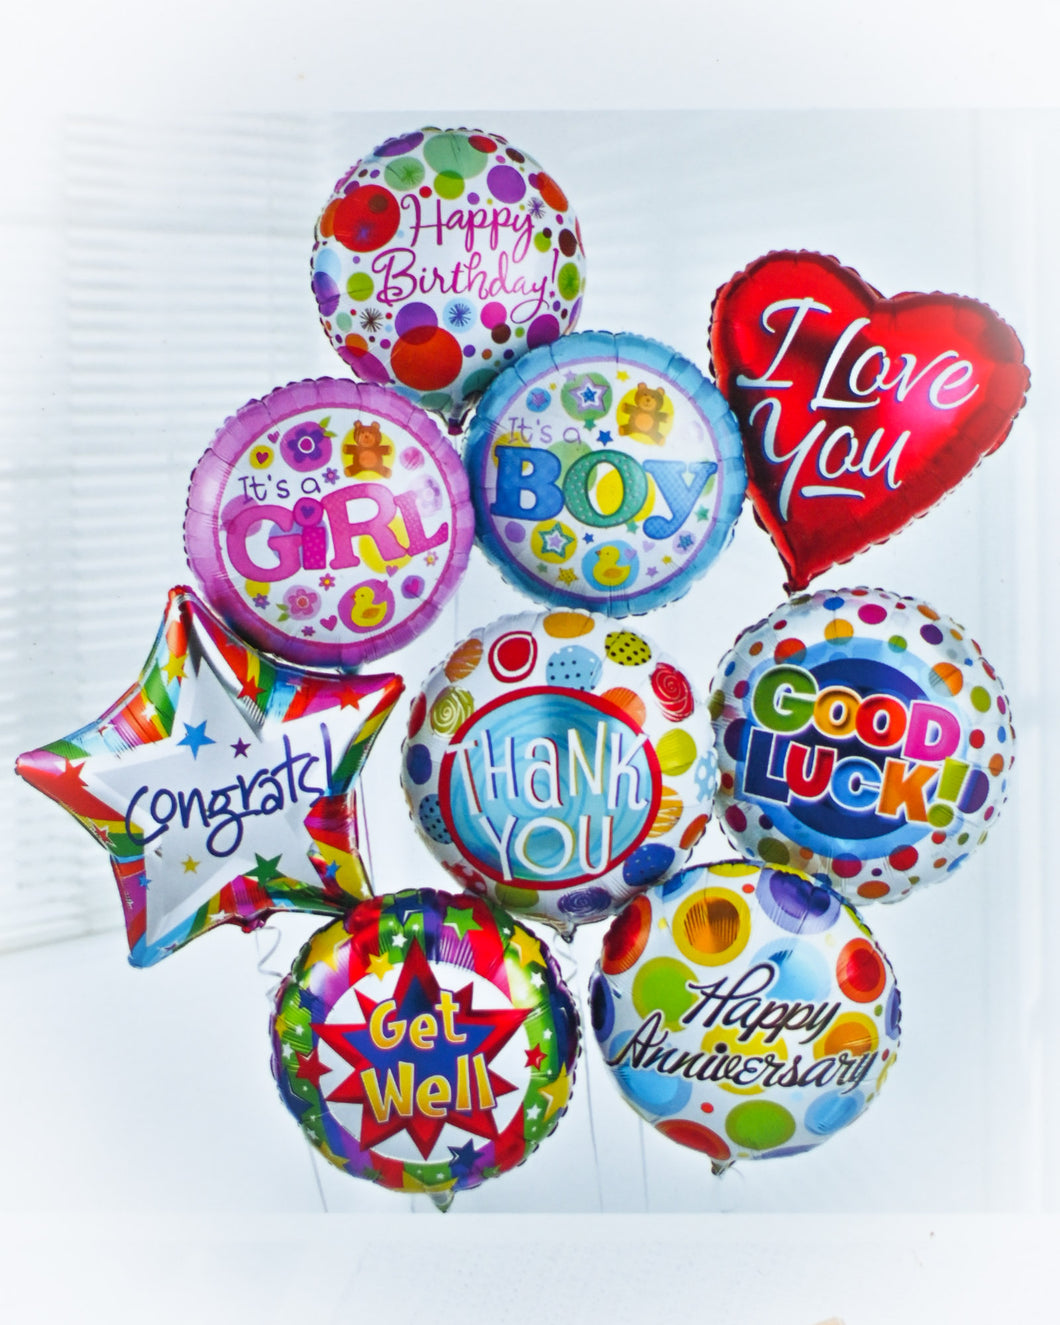 Add a Celebration Helium Balloon